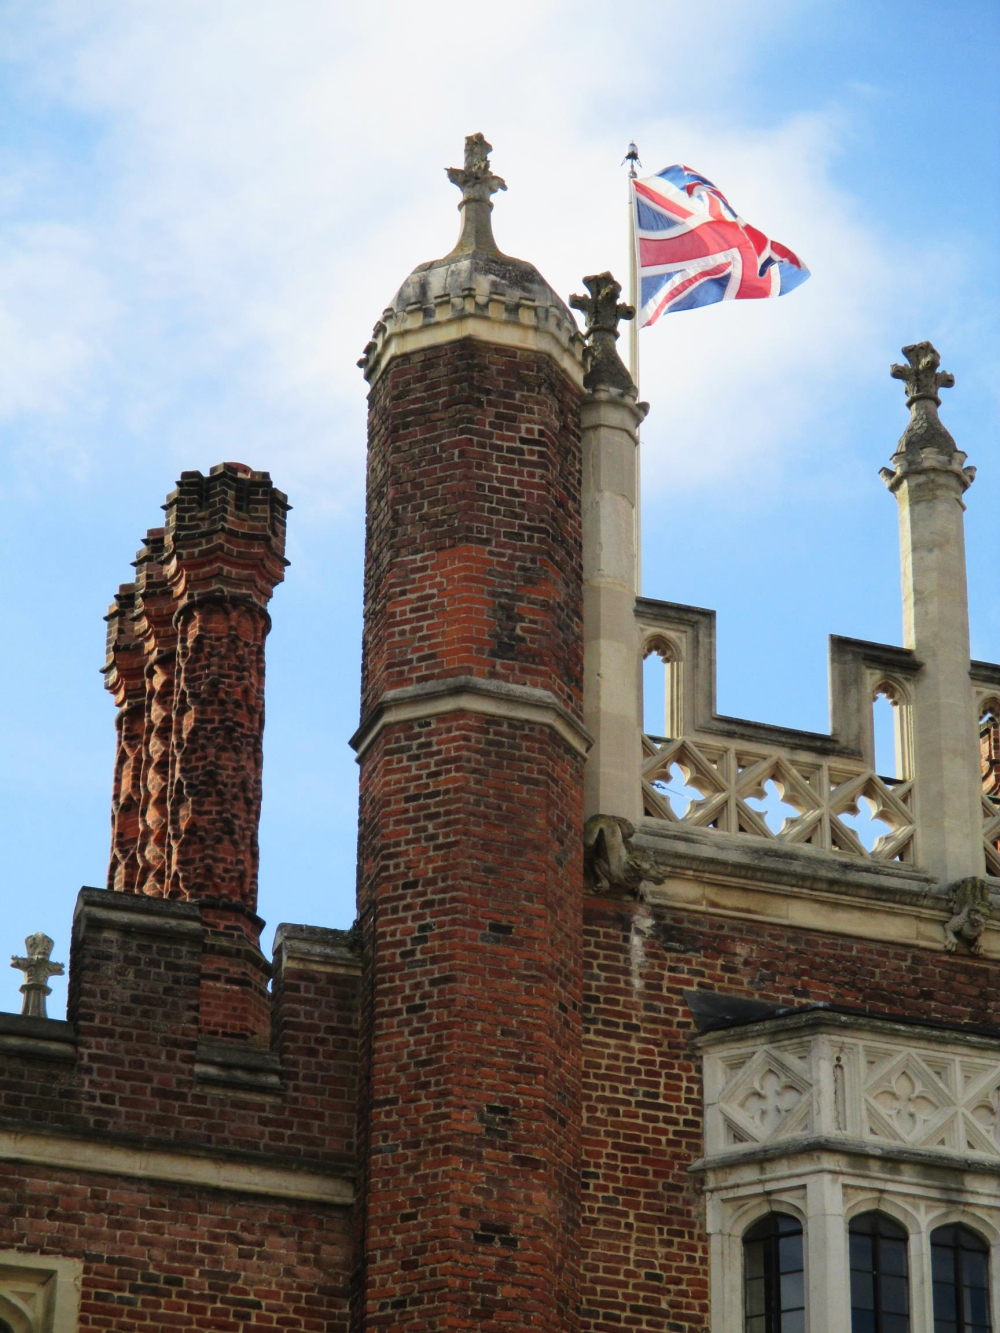 The (recently reaffirmed) Union Jack flies proud